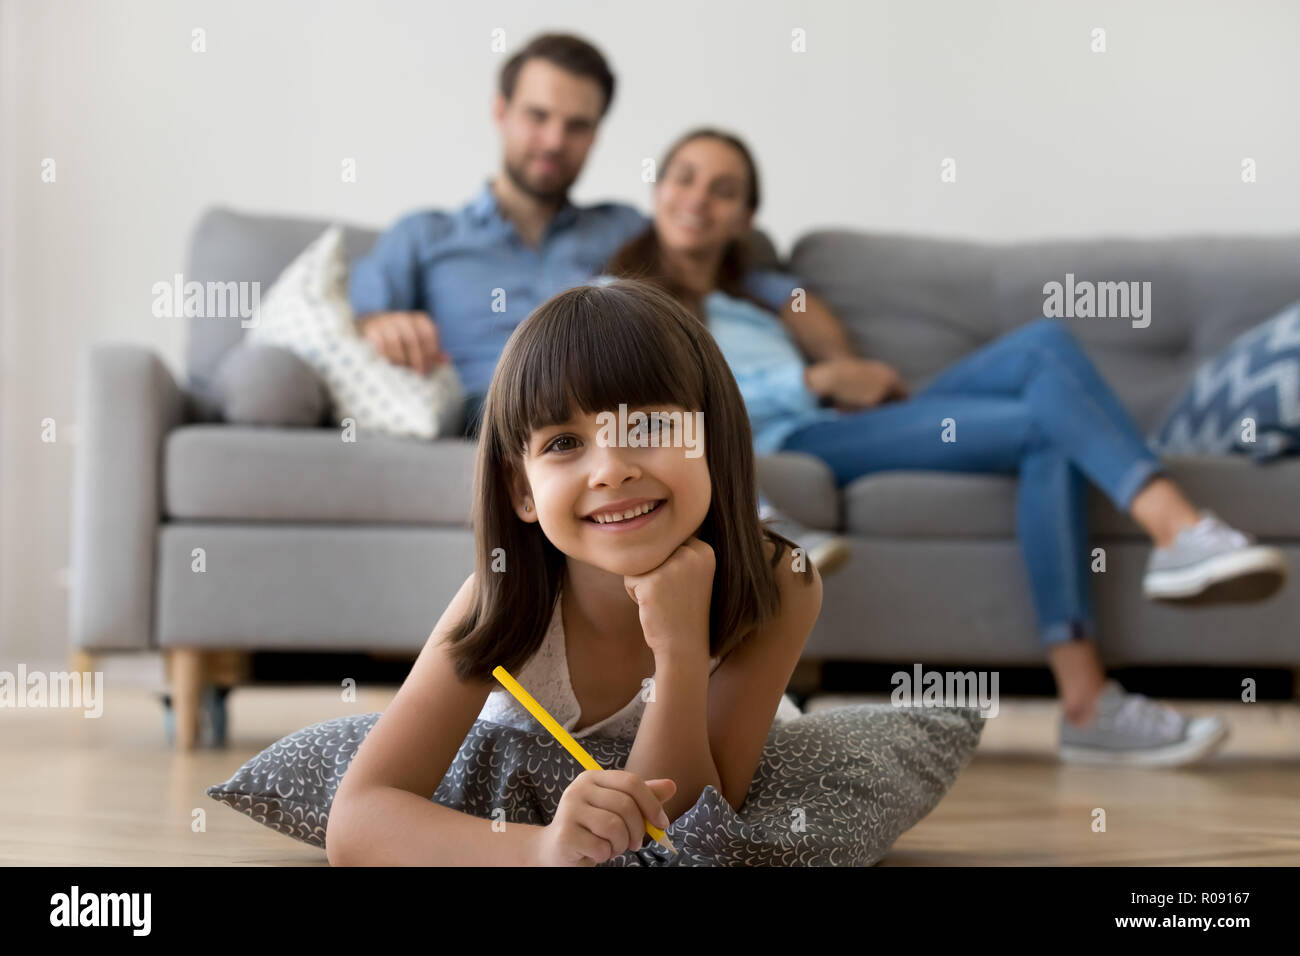 Daughter looking at camera lying on floor drawing holding pencil - Stock Image